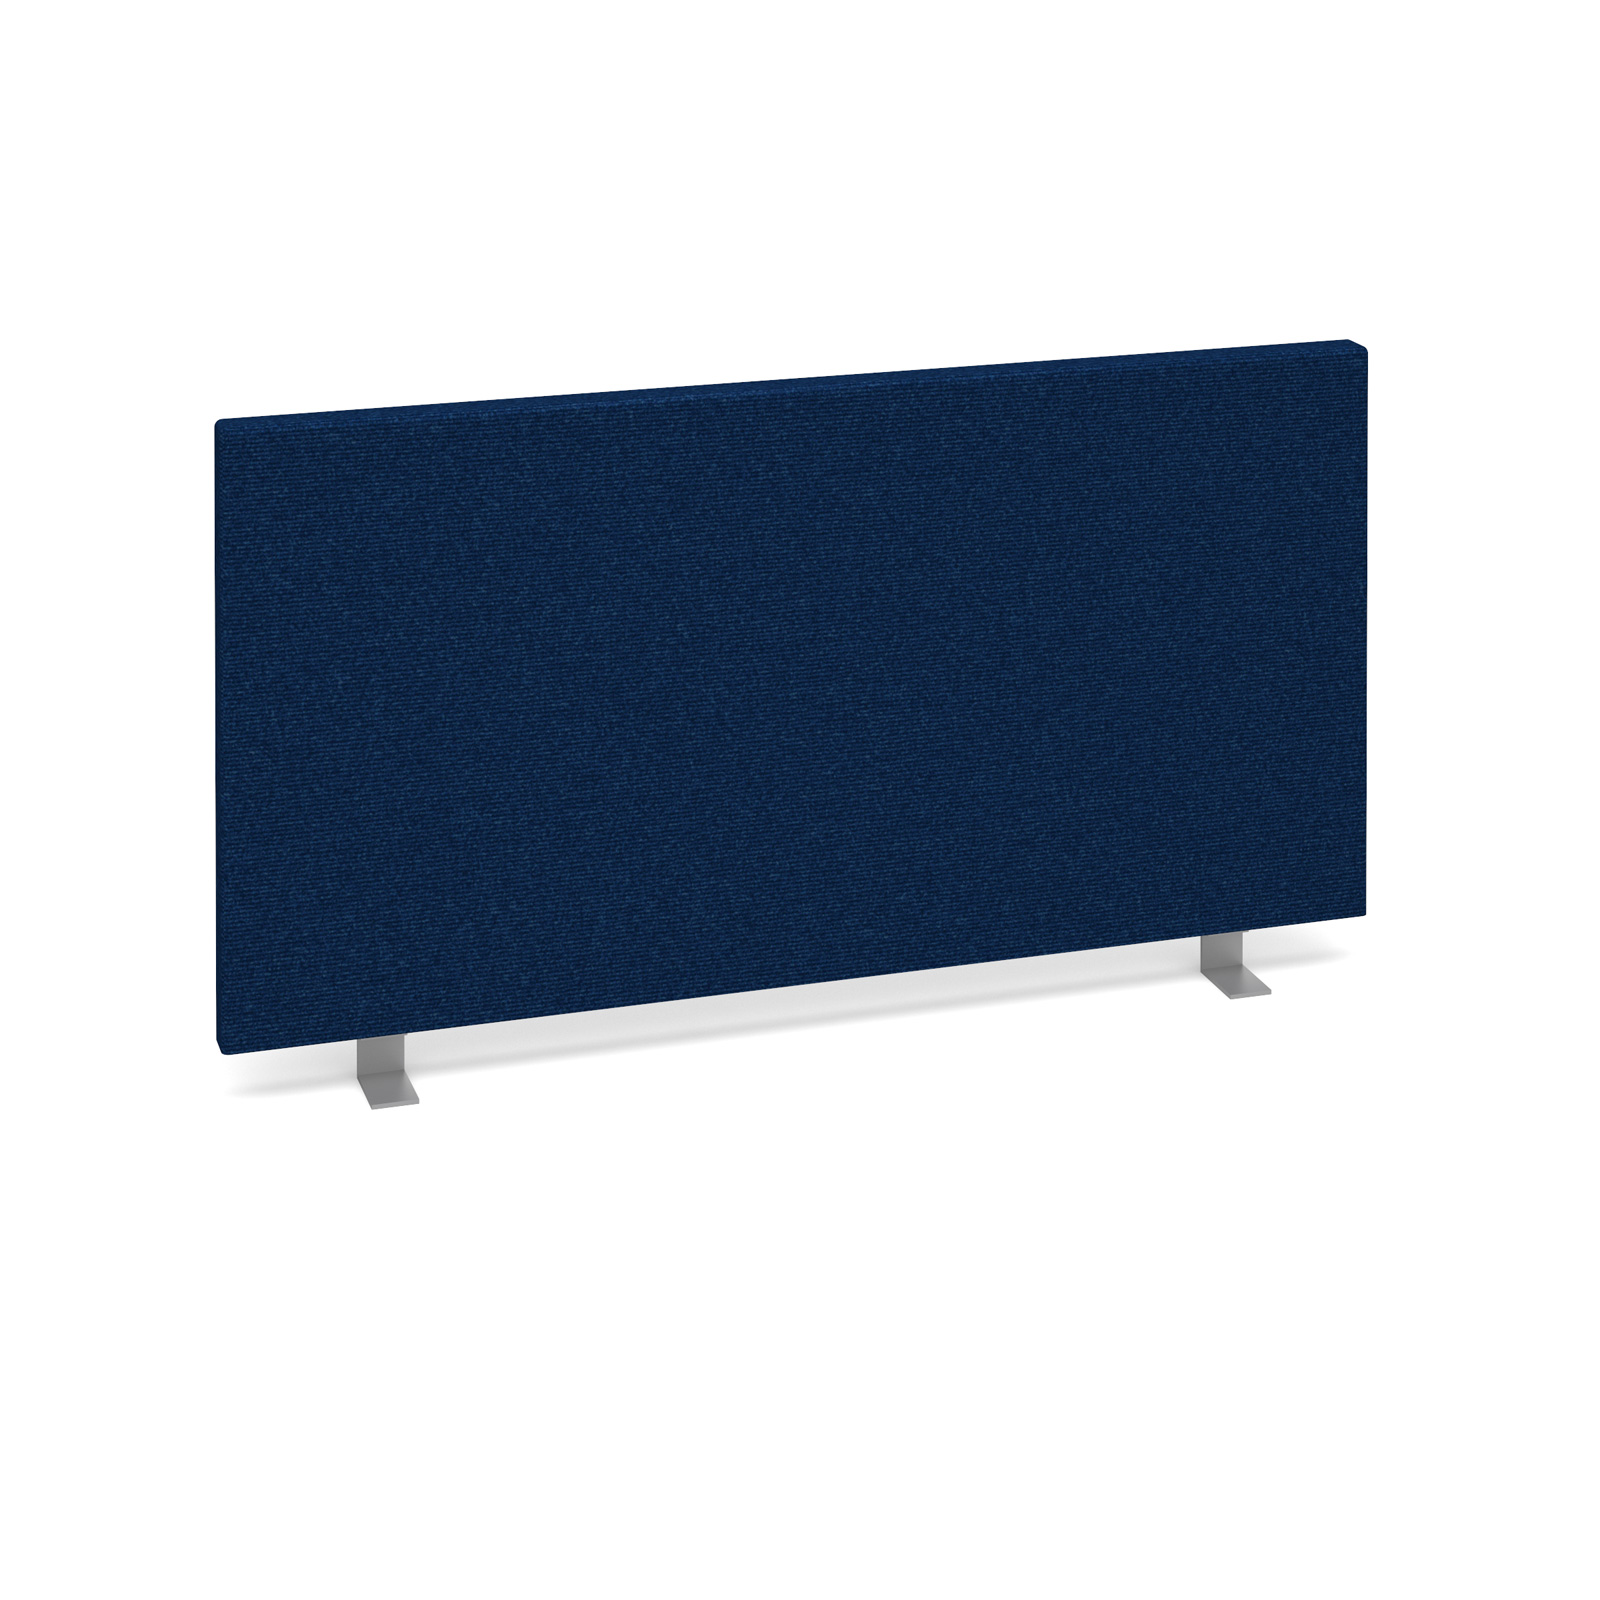 Straight Tops Straight desktop fabric screen 800mm x 400mm - blue